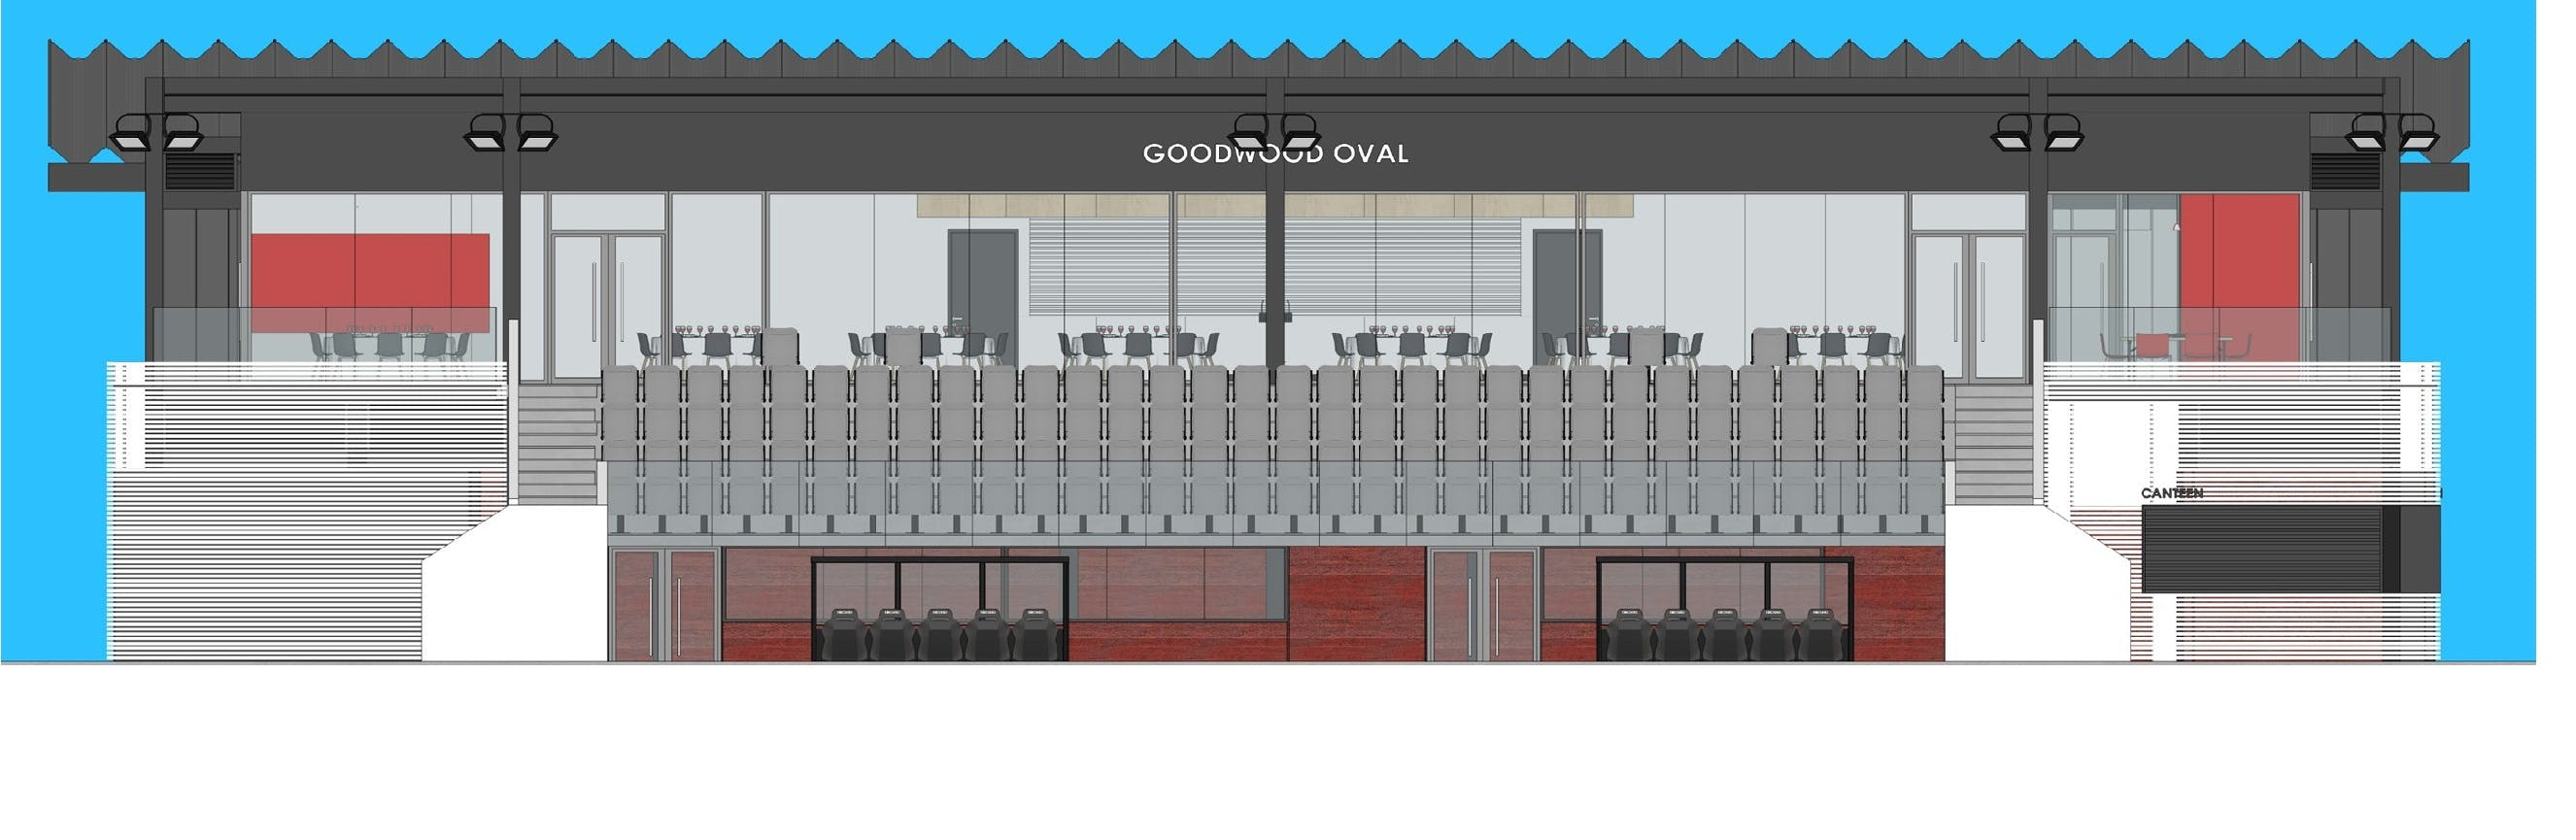 Concept Image of Goodwood Oval front view